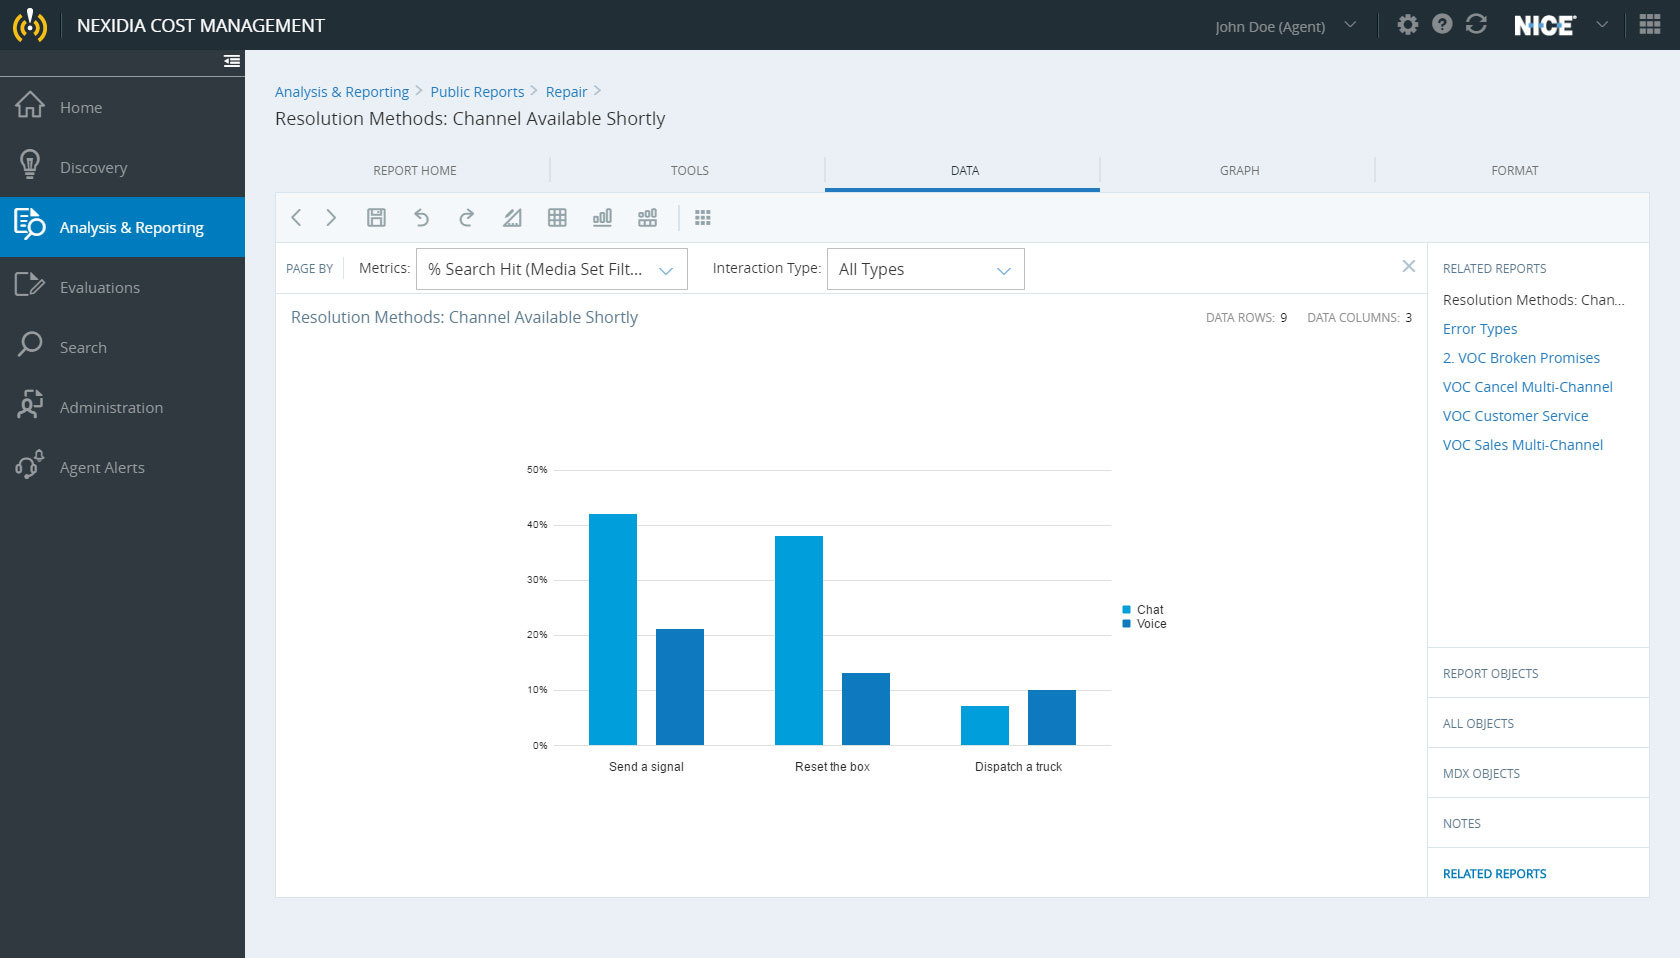 With the Nexidia Analytics solution, integrated reporting and query building reflect complete omni-channel interaction analysis (Photo: NICE)